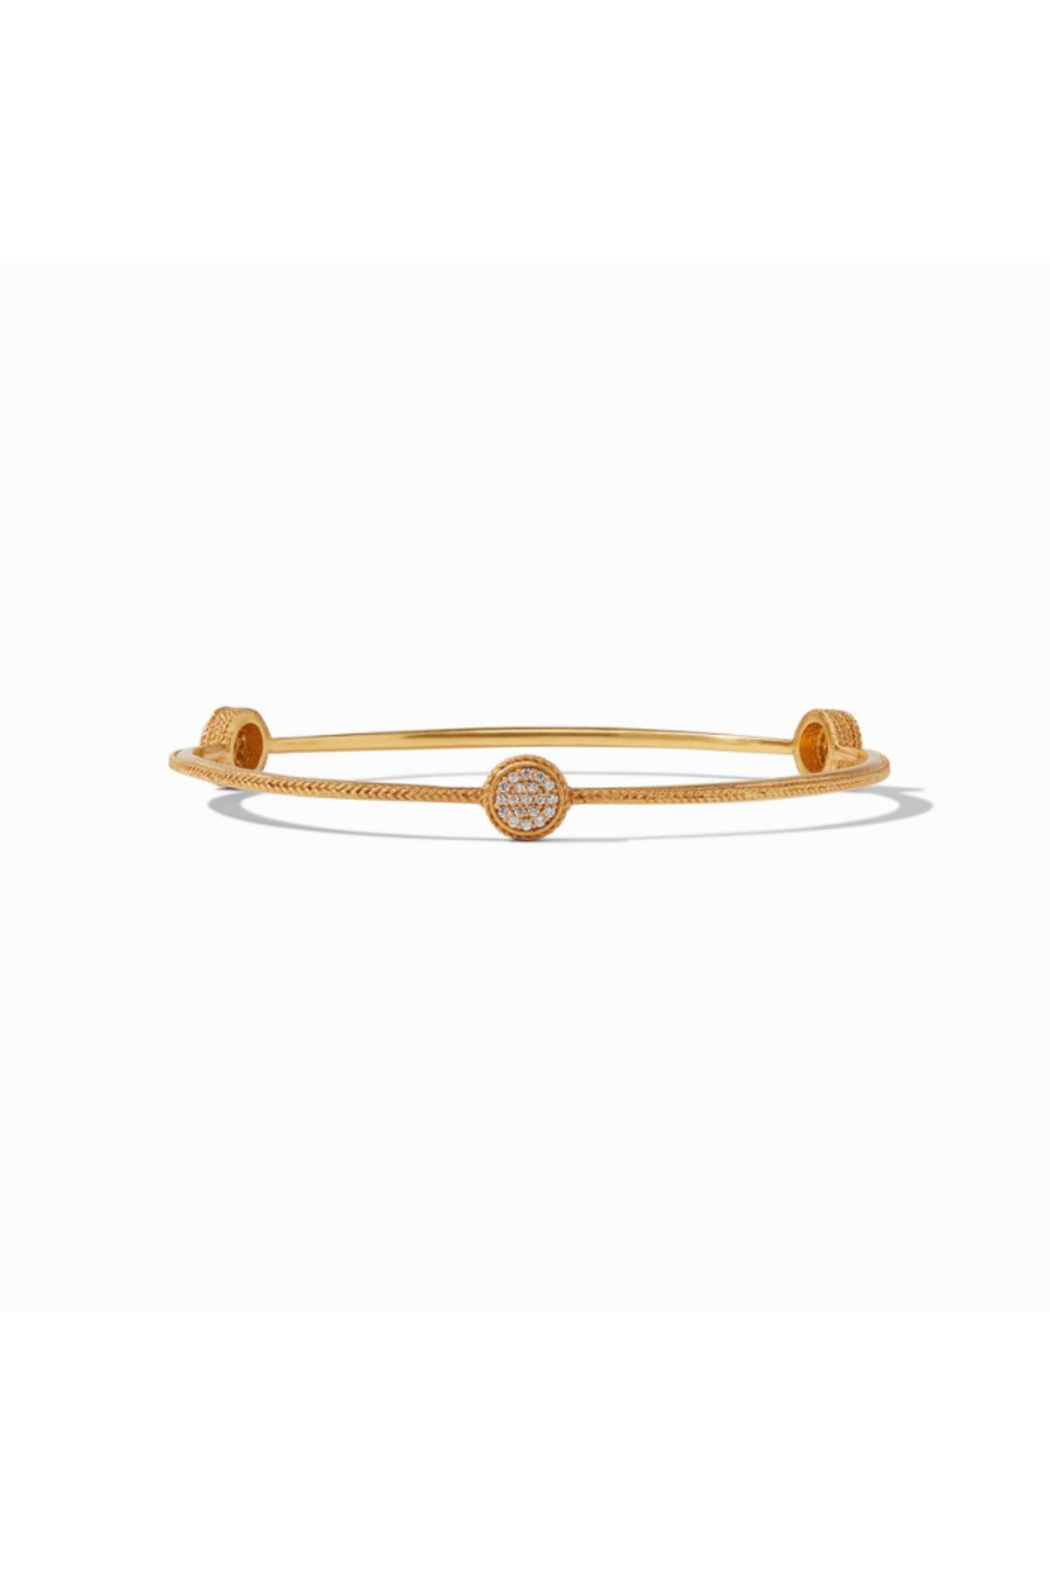 Julie Vos  Windsor Pave Bangle Gold Pave Cubic Zirconia Small - Main Image